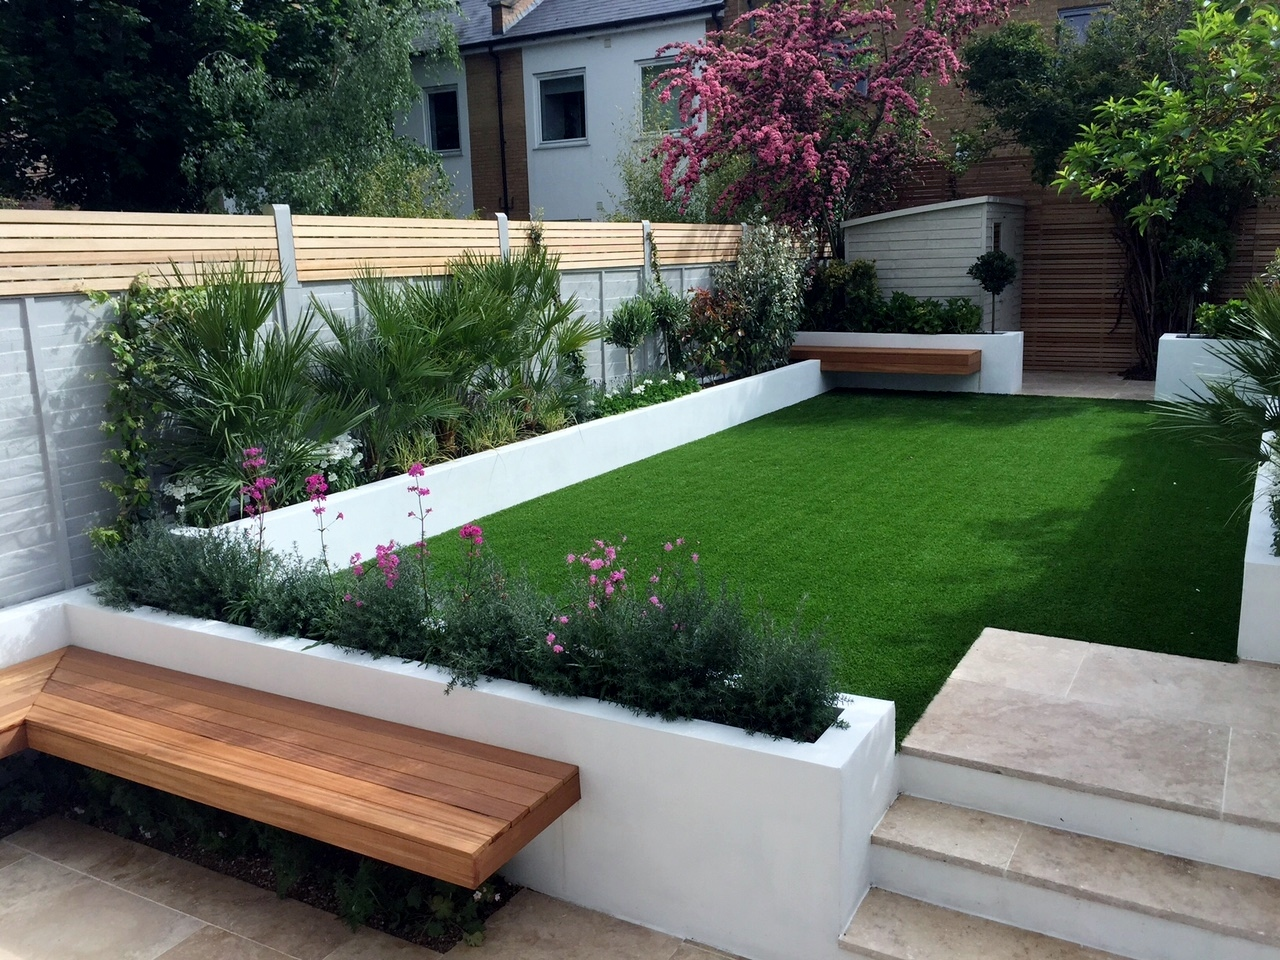 Modern garden design ideas fulham chelsea battersea for Landscape garden designs ideas